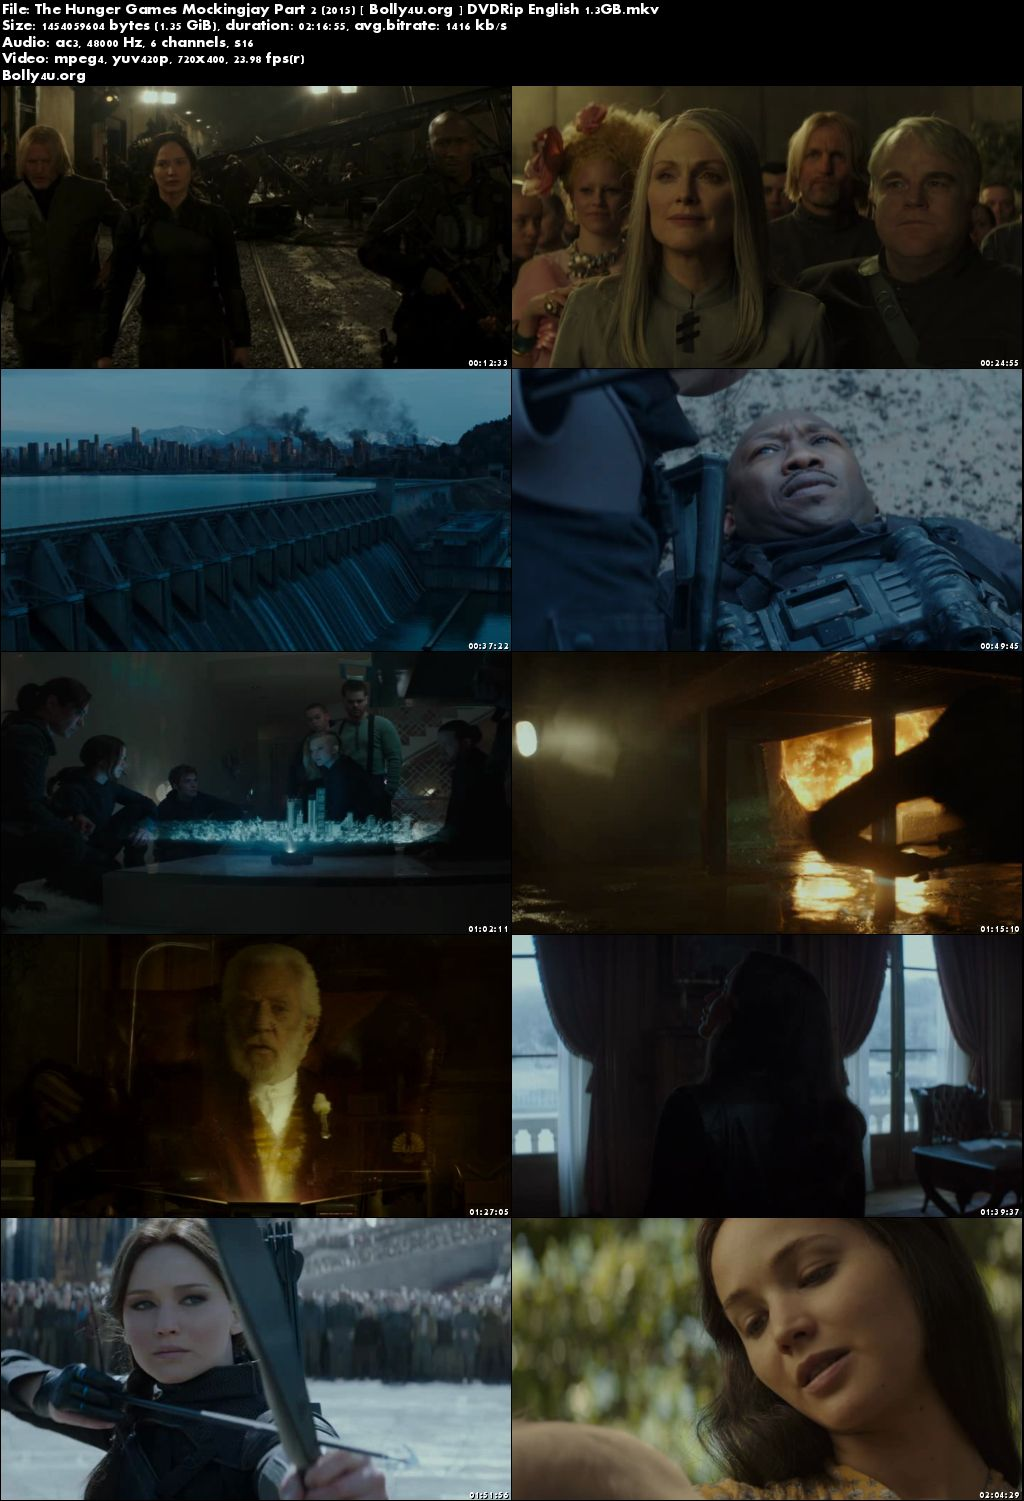 The Hunger Games Mockingjay Part 2 2015 DVDRip 400Mb English Download